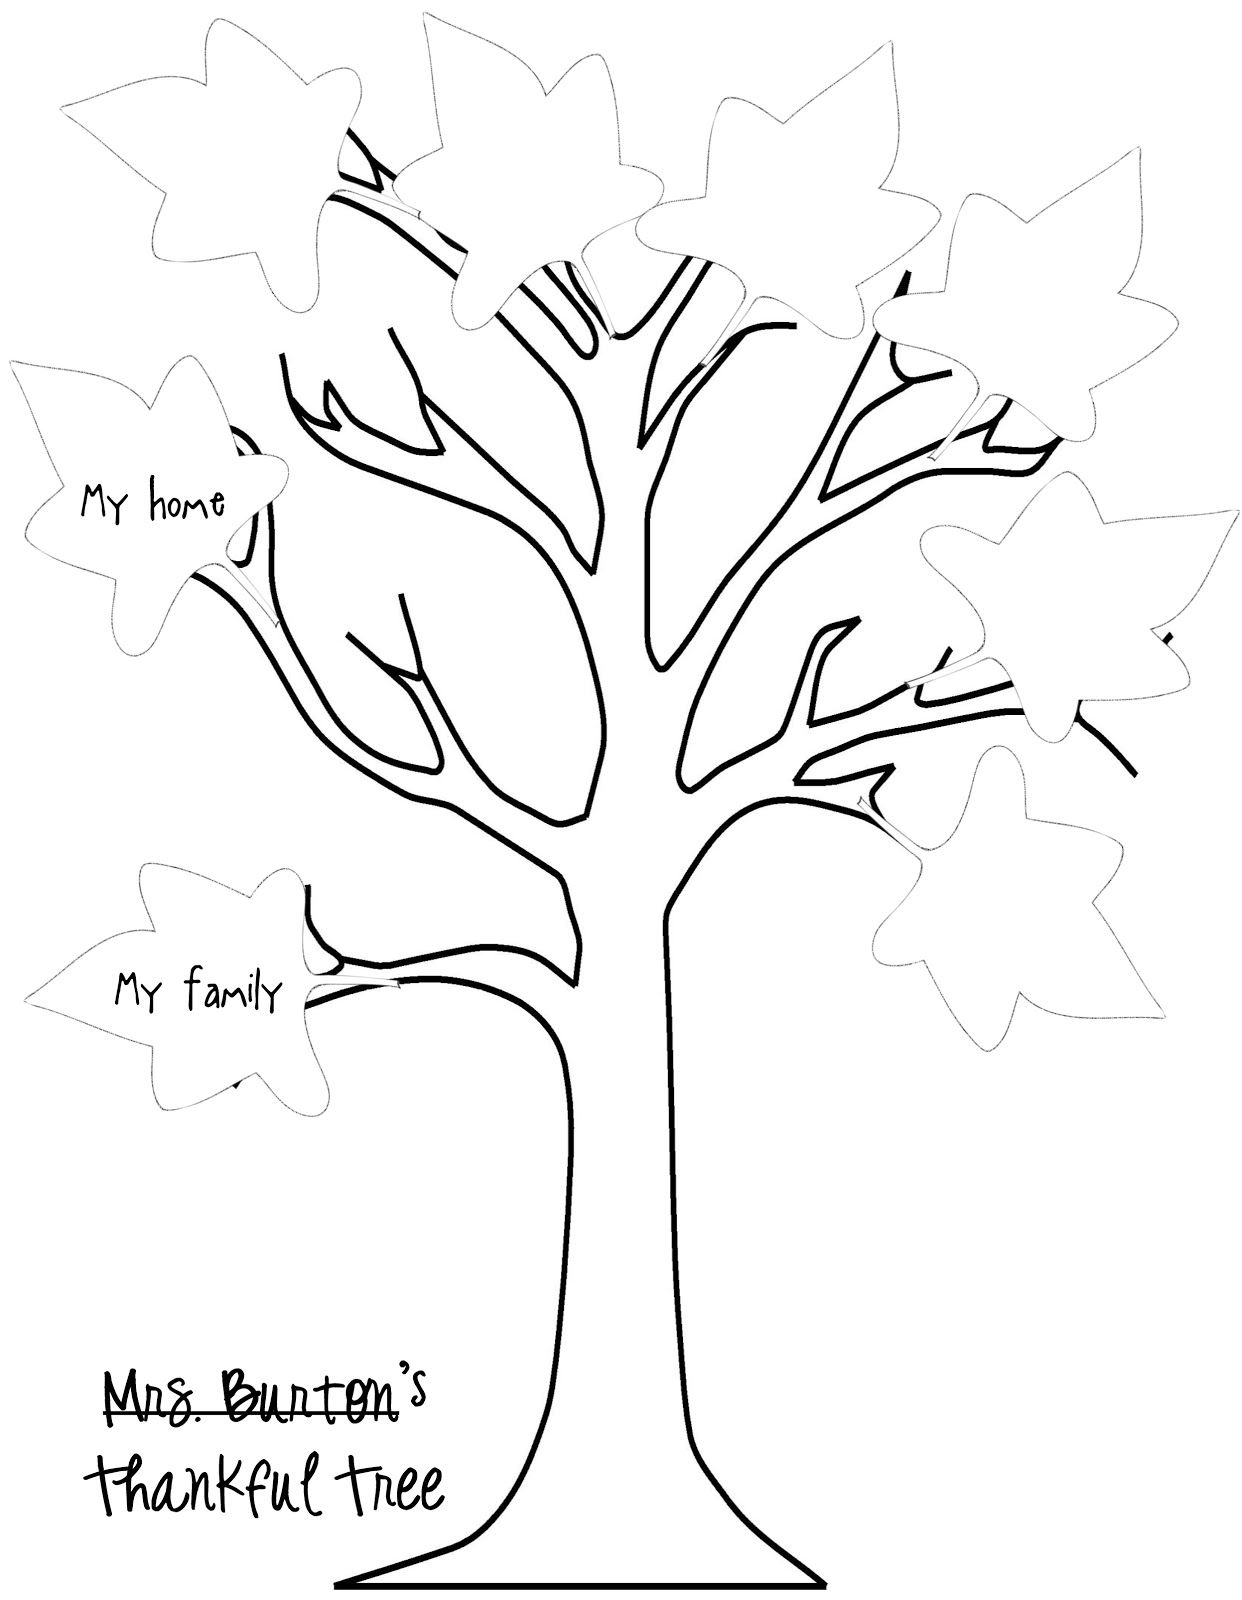 Worksheets The Giving Tree Worksheets free printables to make individual im thankful tree for kids at home or school